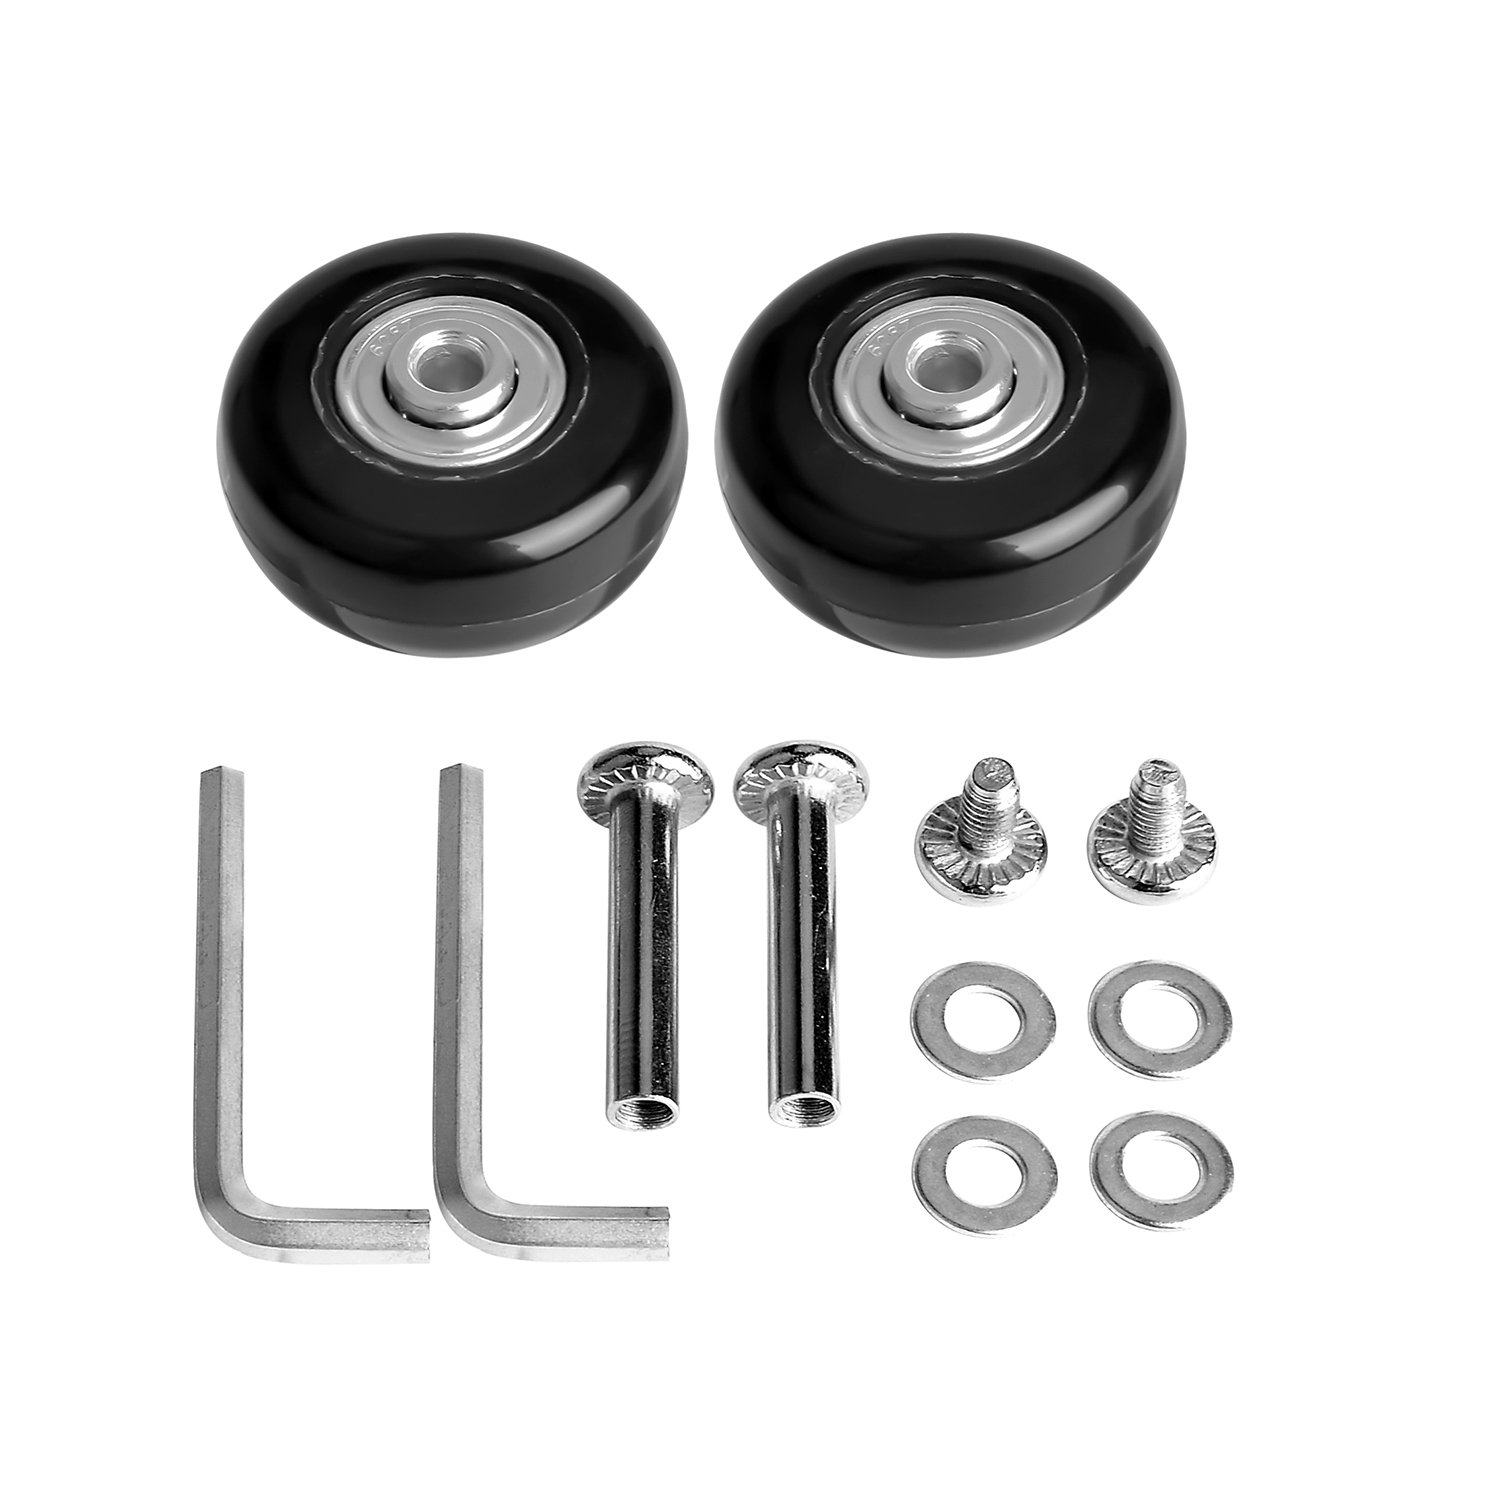 Inline Outdoor Skate Replacement Wheels with Multi Colors/&Sizes One Set of 2 or 4 Wheels F-ber Luggage Suitcase Wheels with ABEC 608zz Bearings